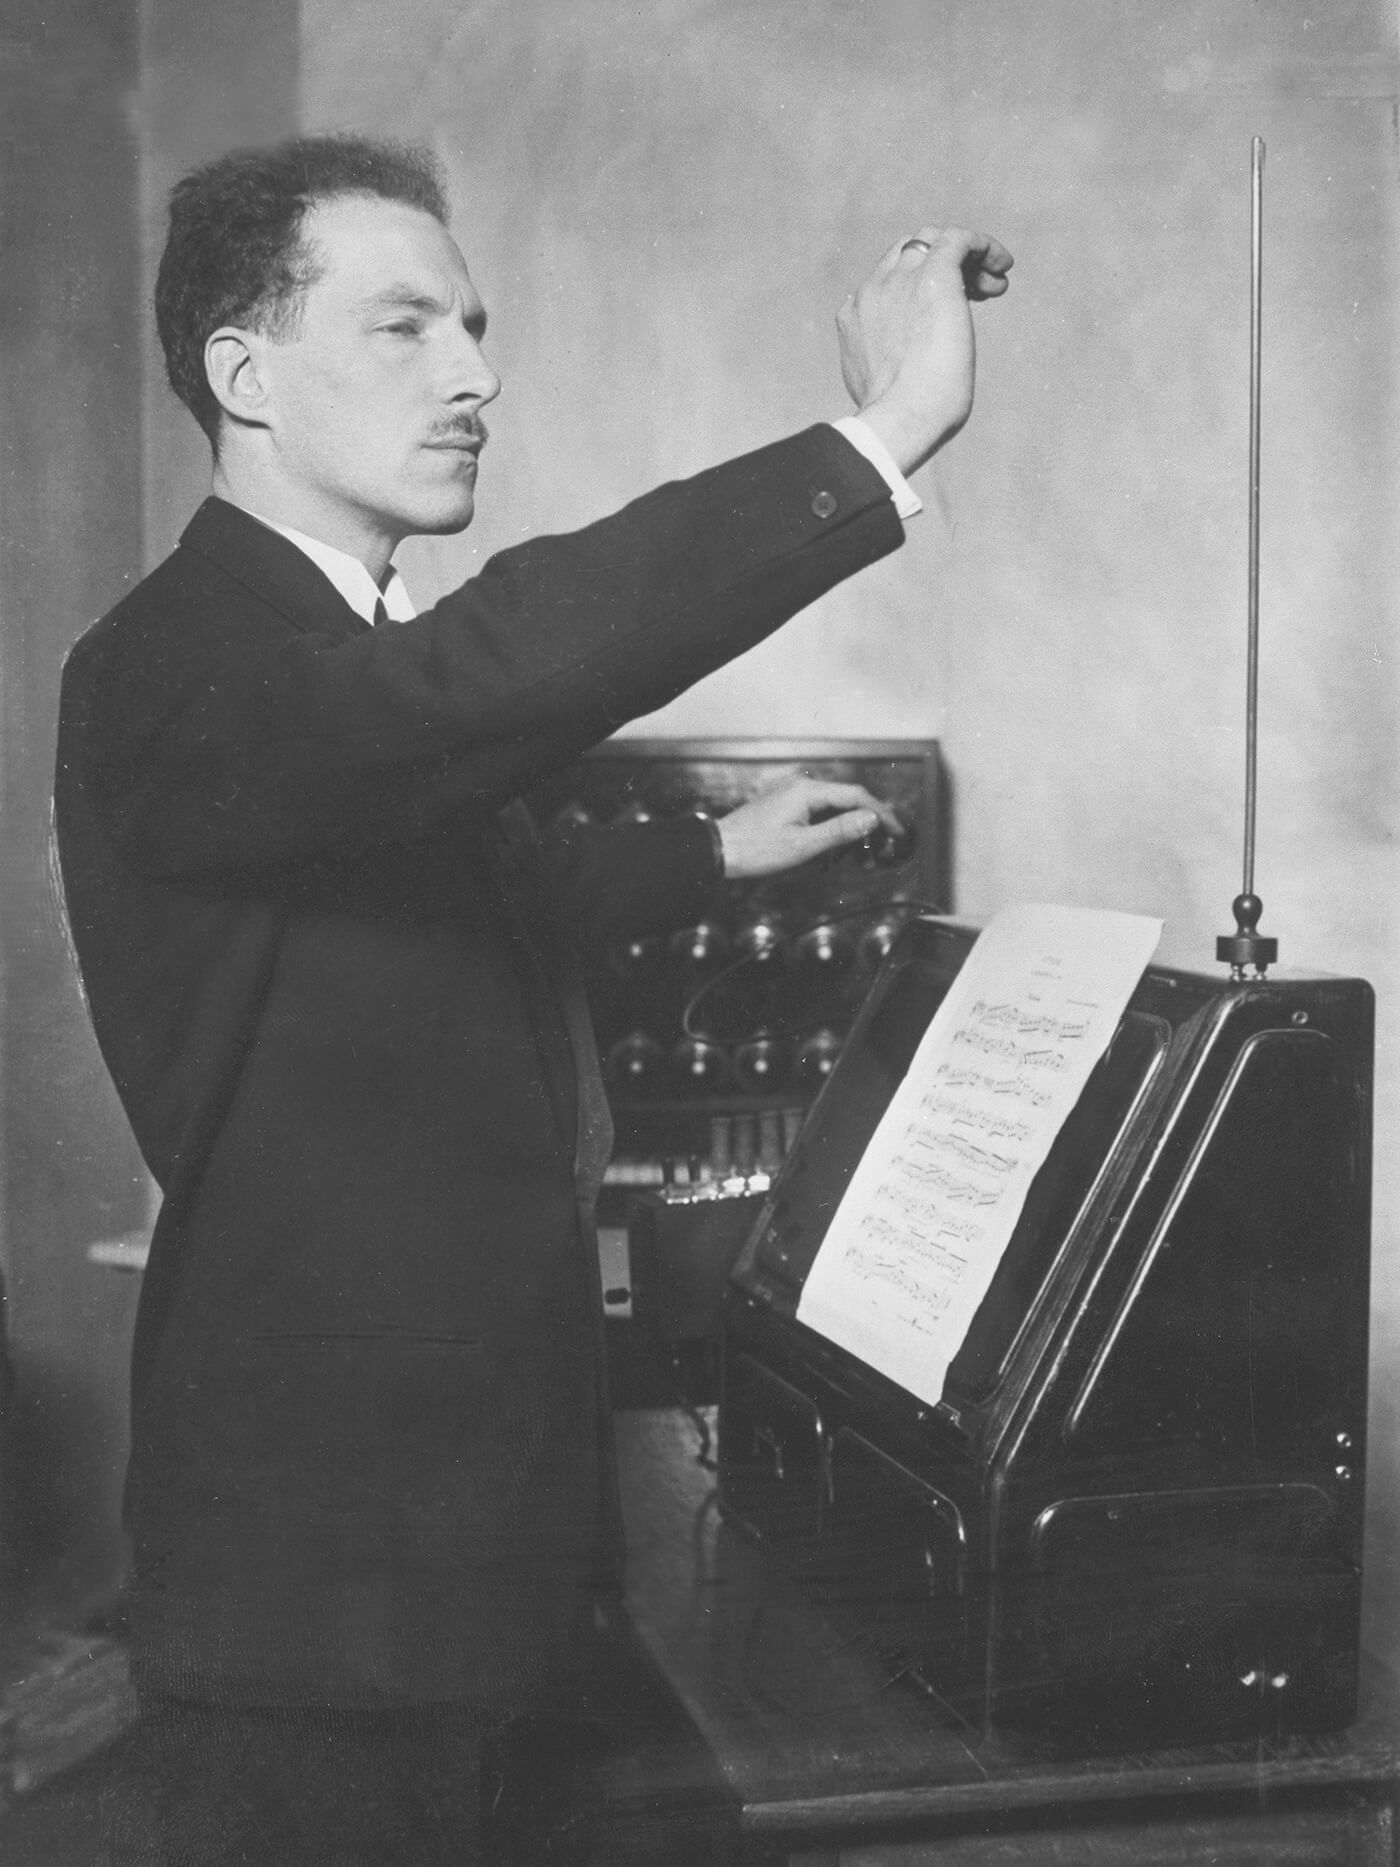 Léon Theremin, history of drum machine